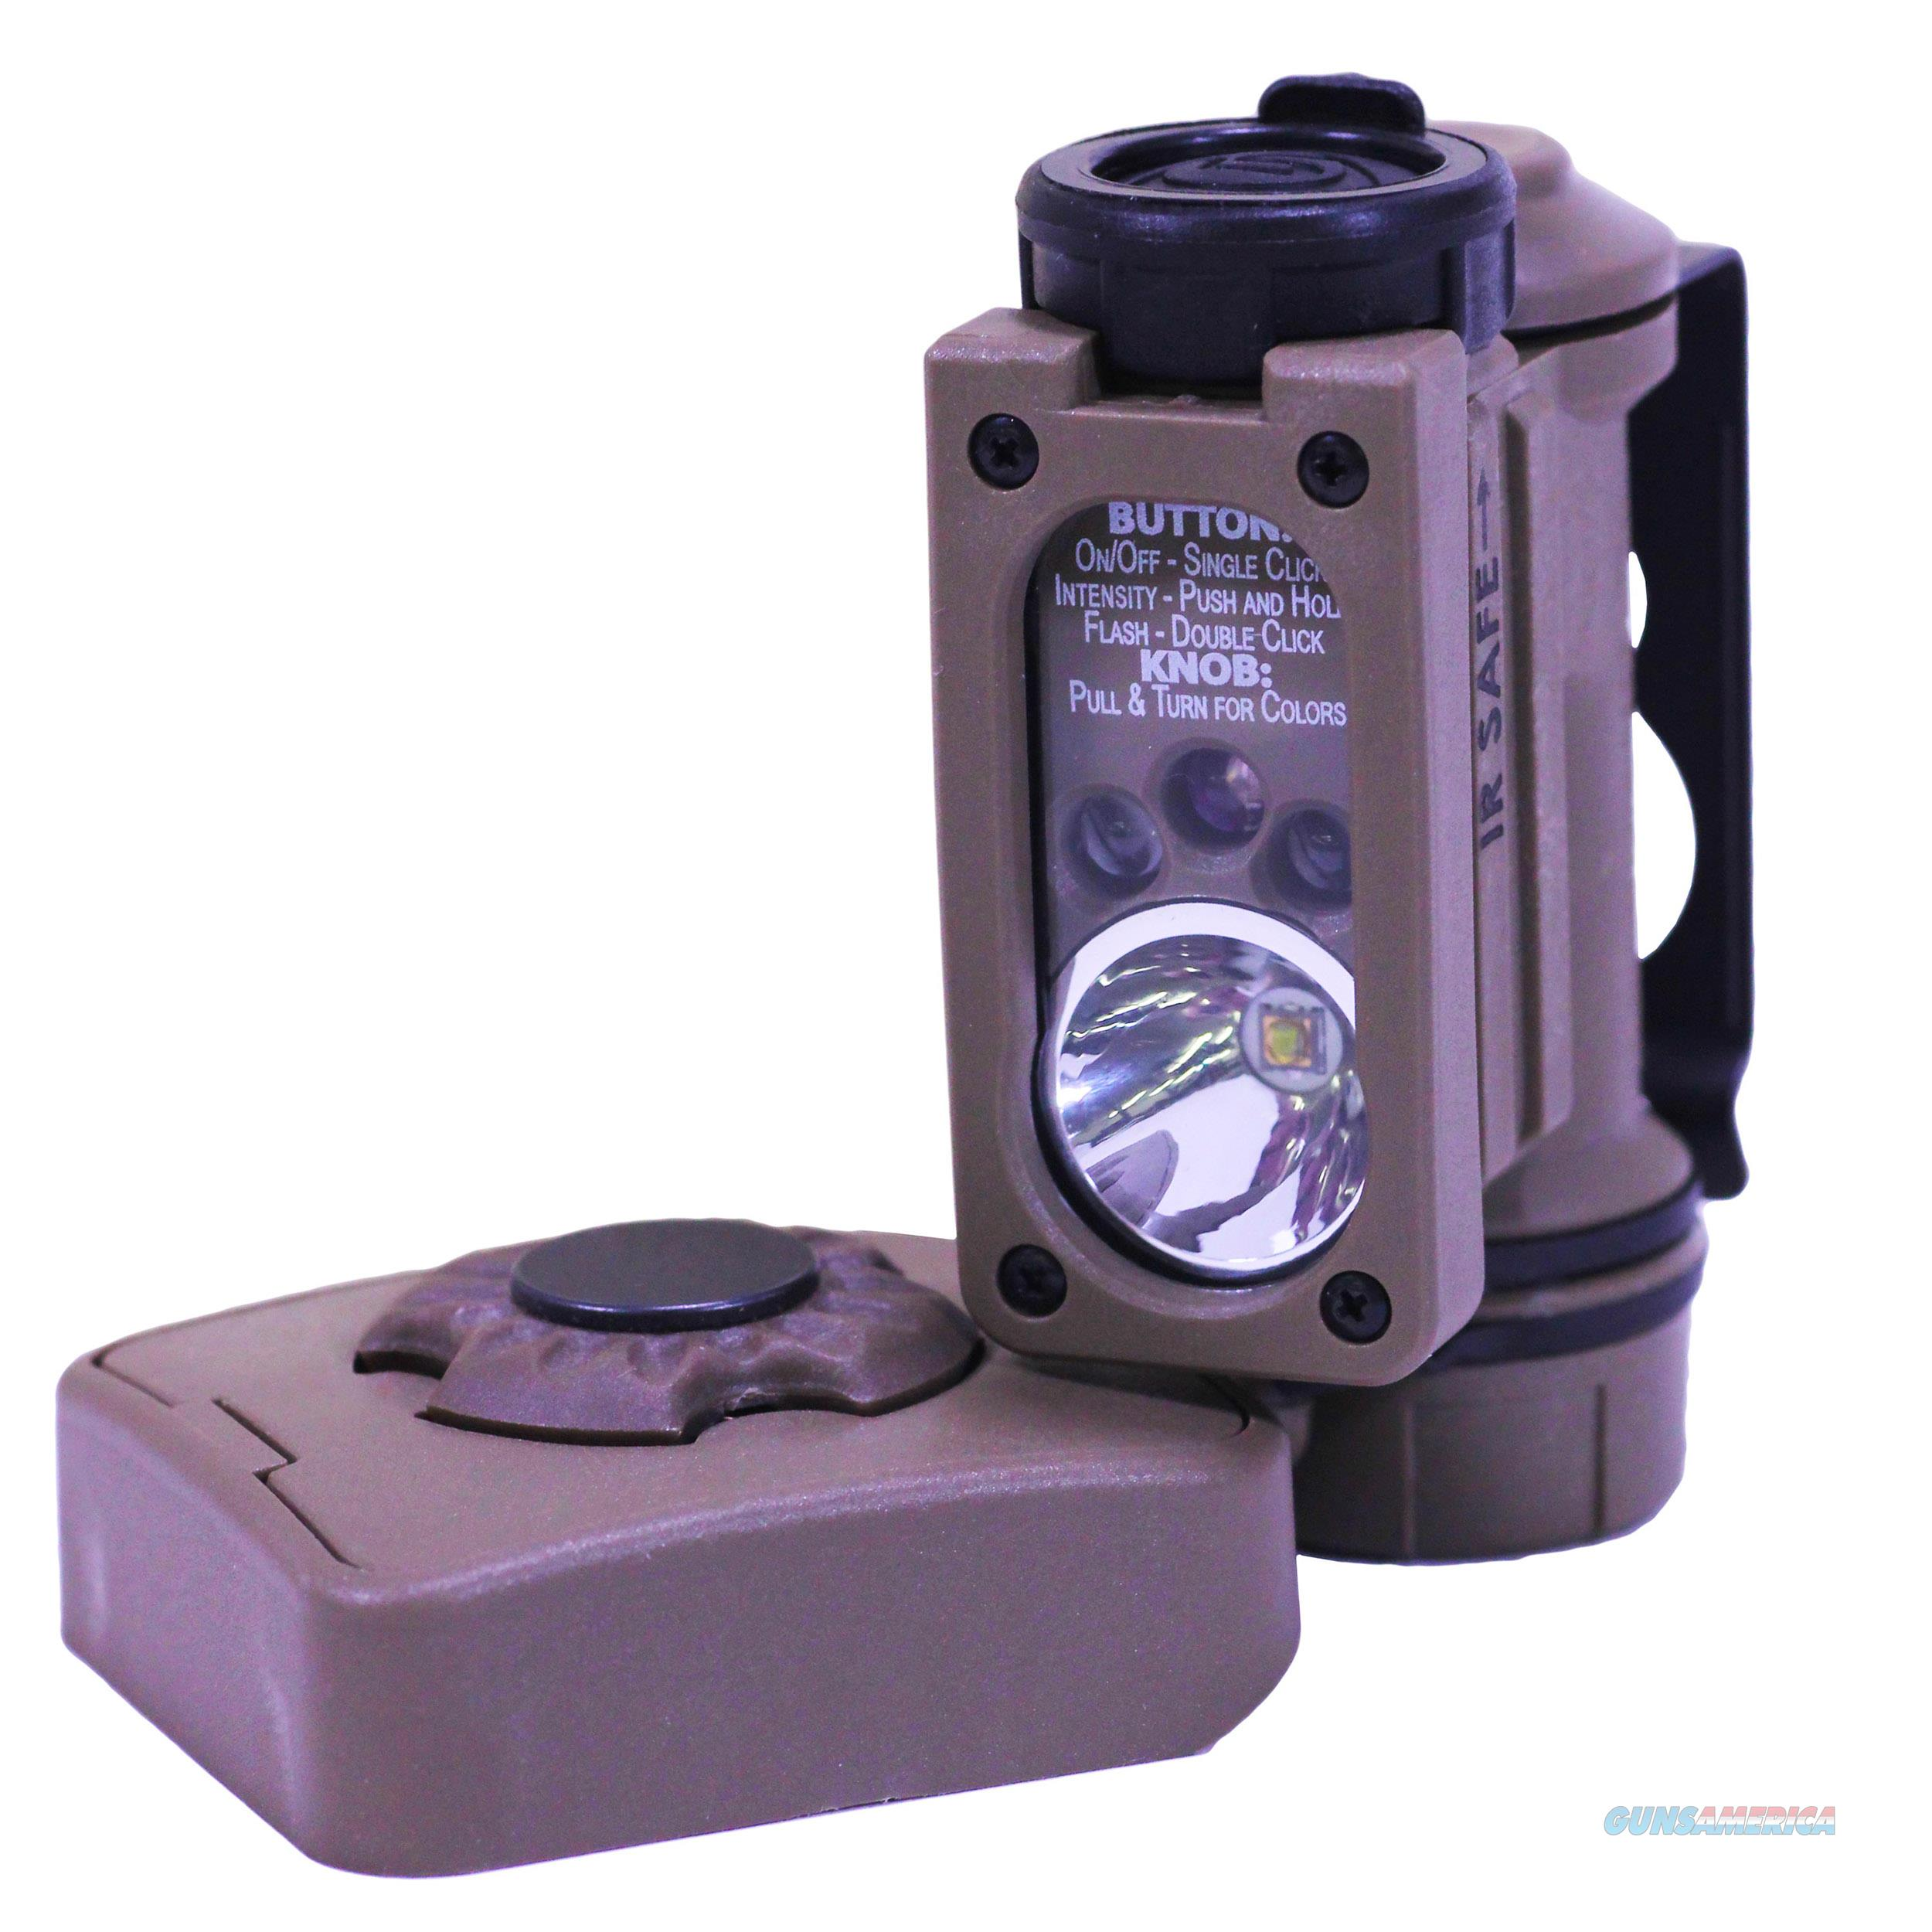 Streamlight Sidewinder Compact Ii, White, Green, Blue, Infrared Led 14533  Non-Guns > Tactical Equipment/Vests